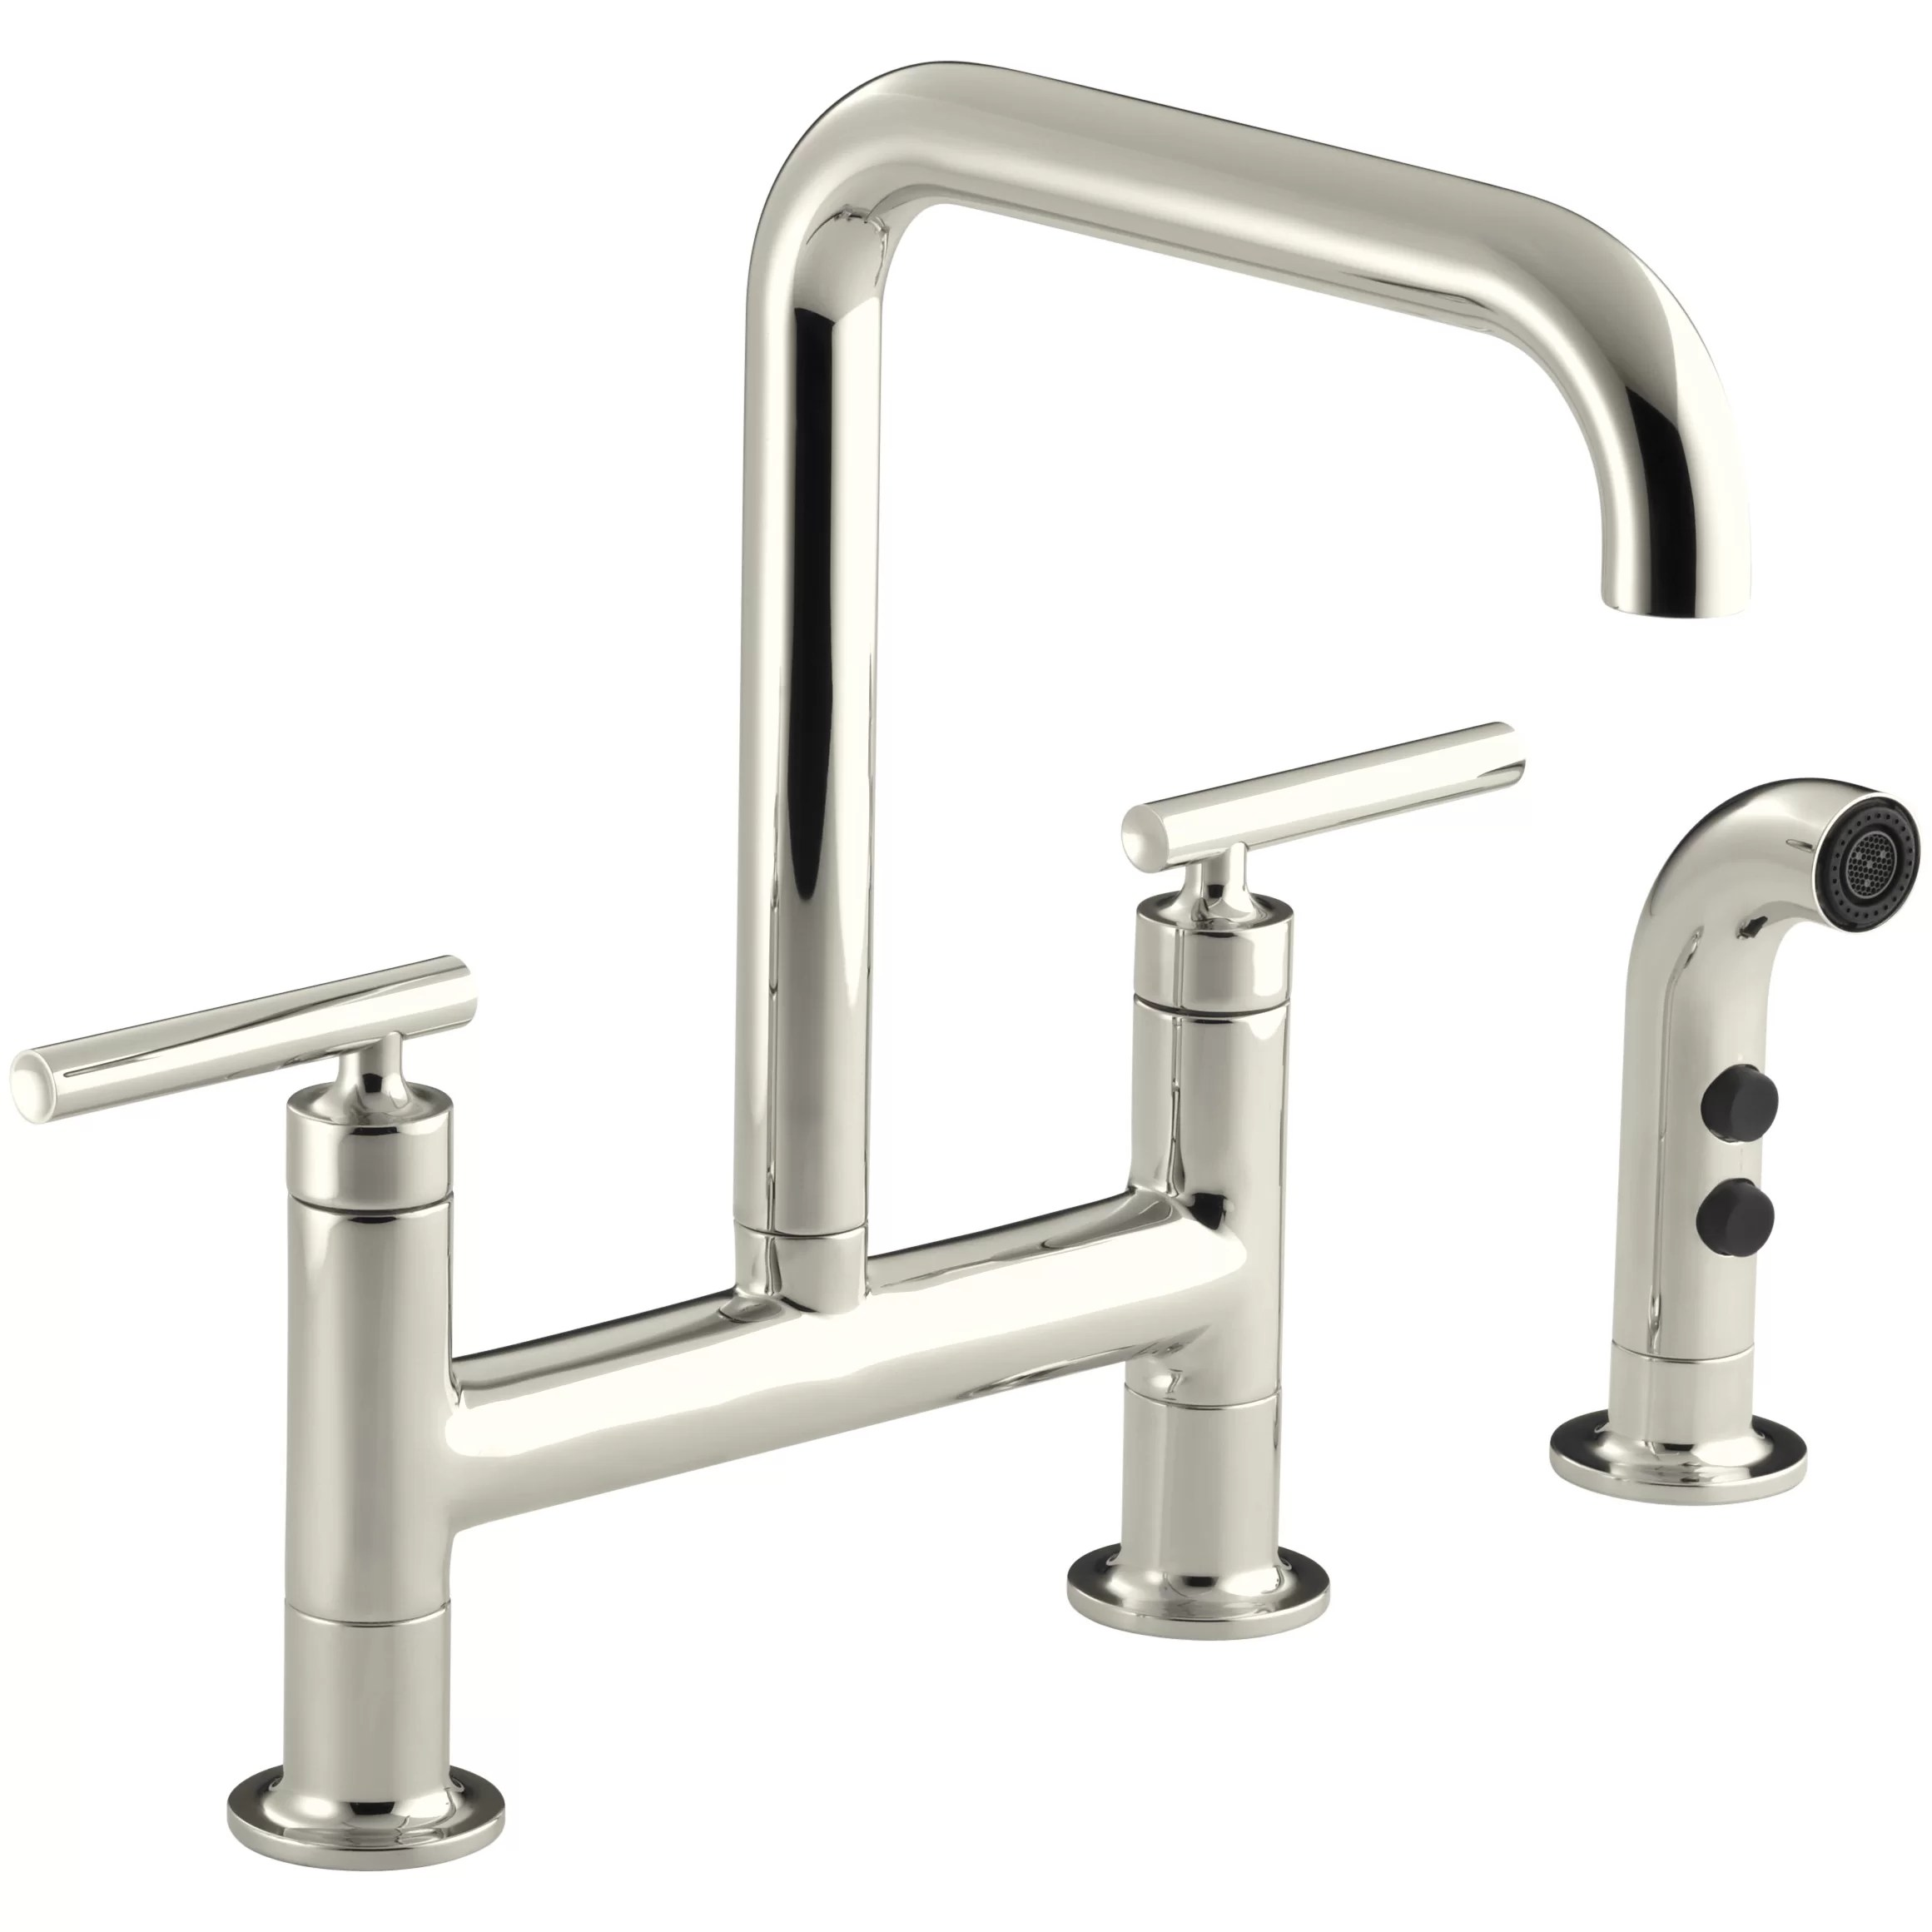 Kohler Purist Deck Mount Kitchen Sink Faucet  Reviews